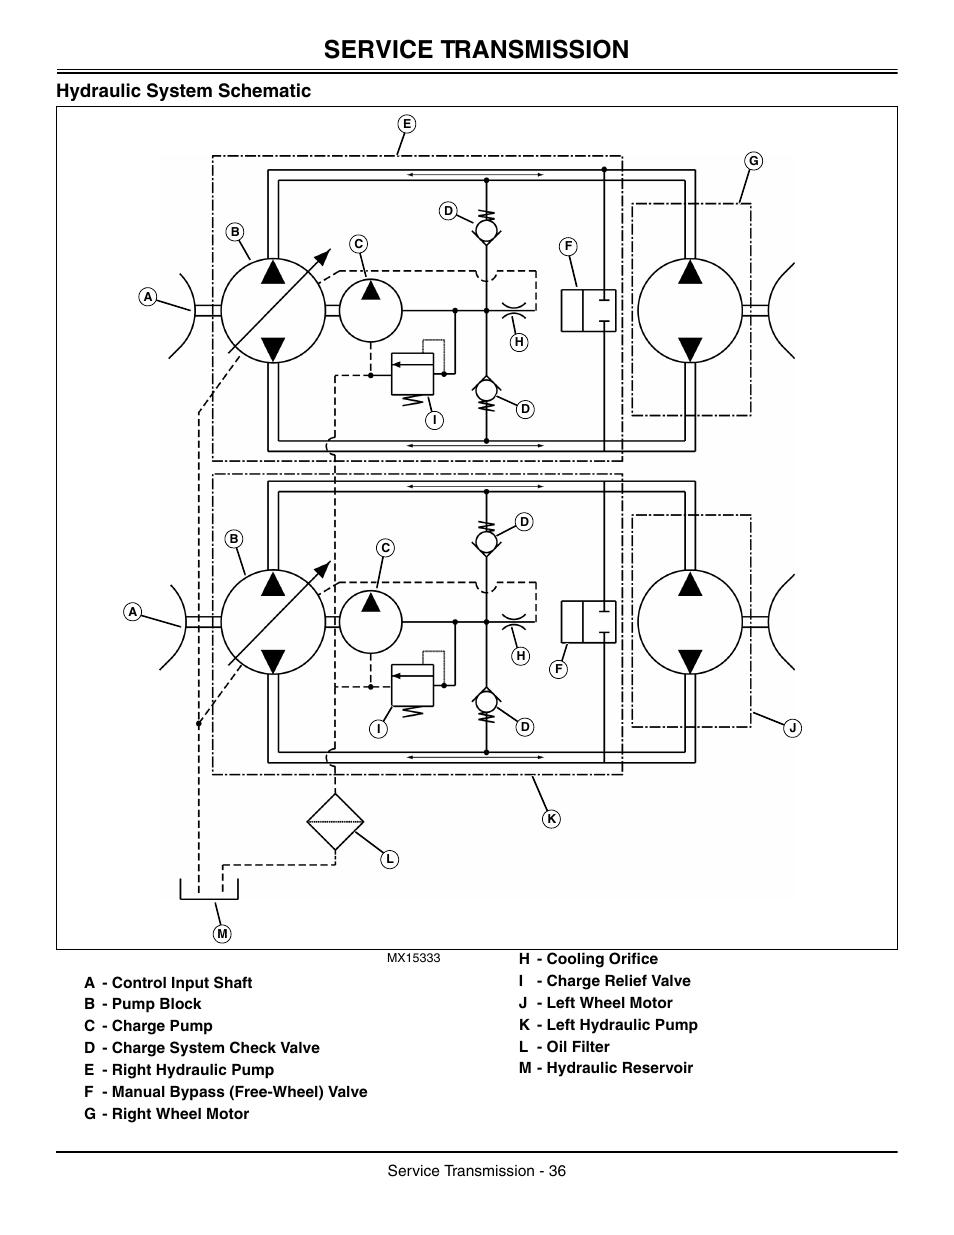 Hydraulic Pump Schematic Diagram Wiring Library System Service Transmission Great Dane Chariot Lx Gdrz61 27khe